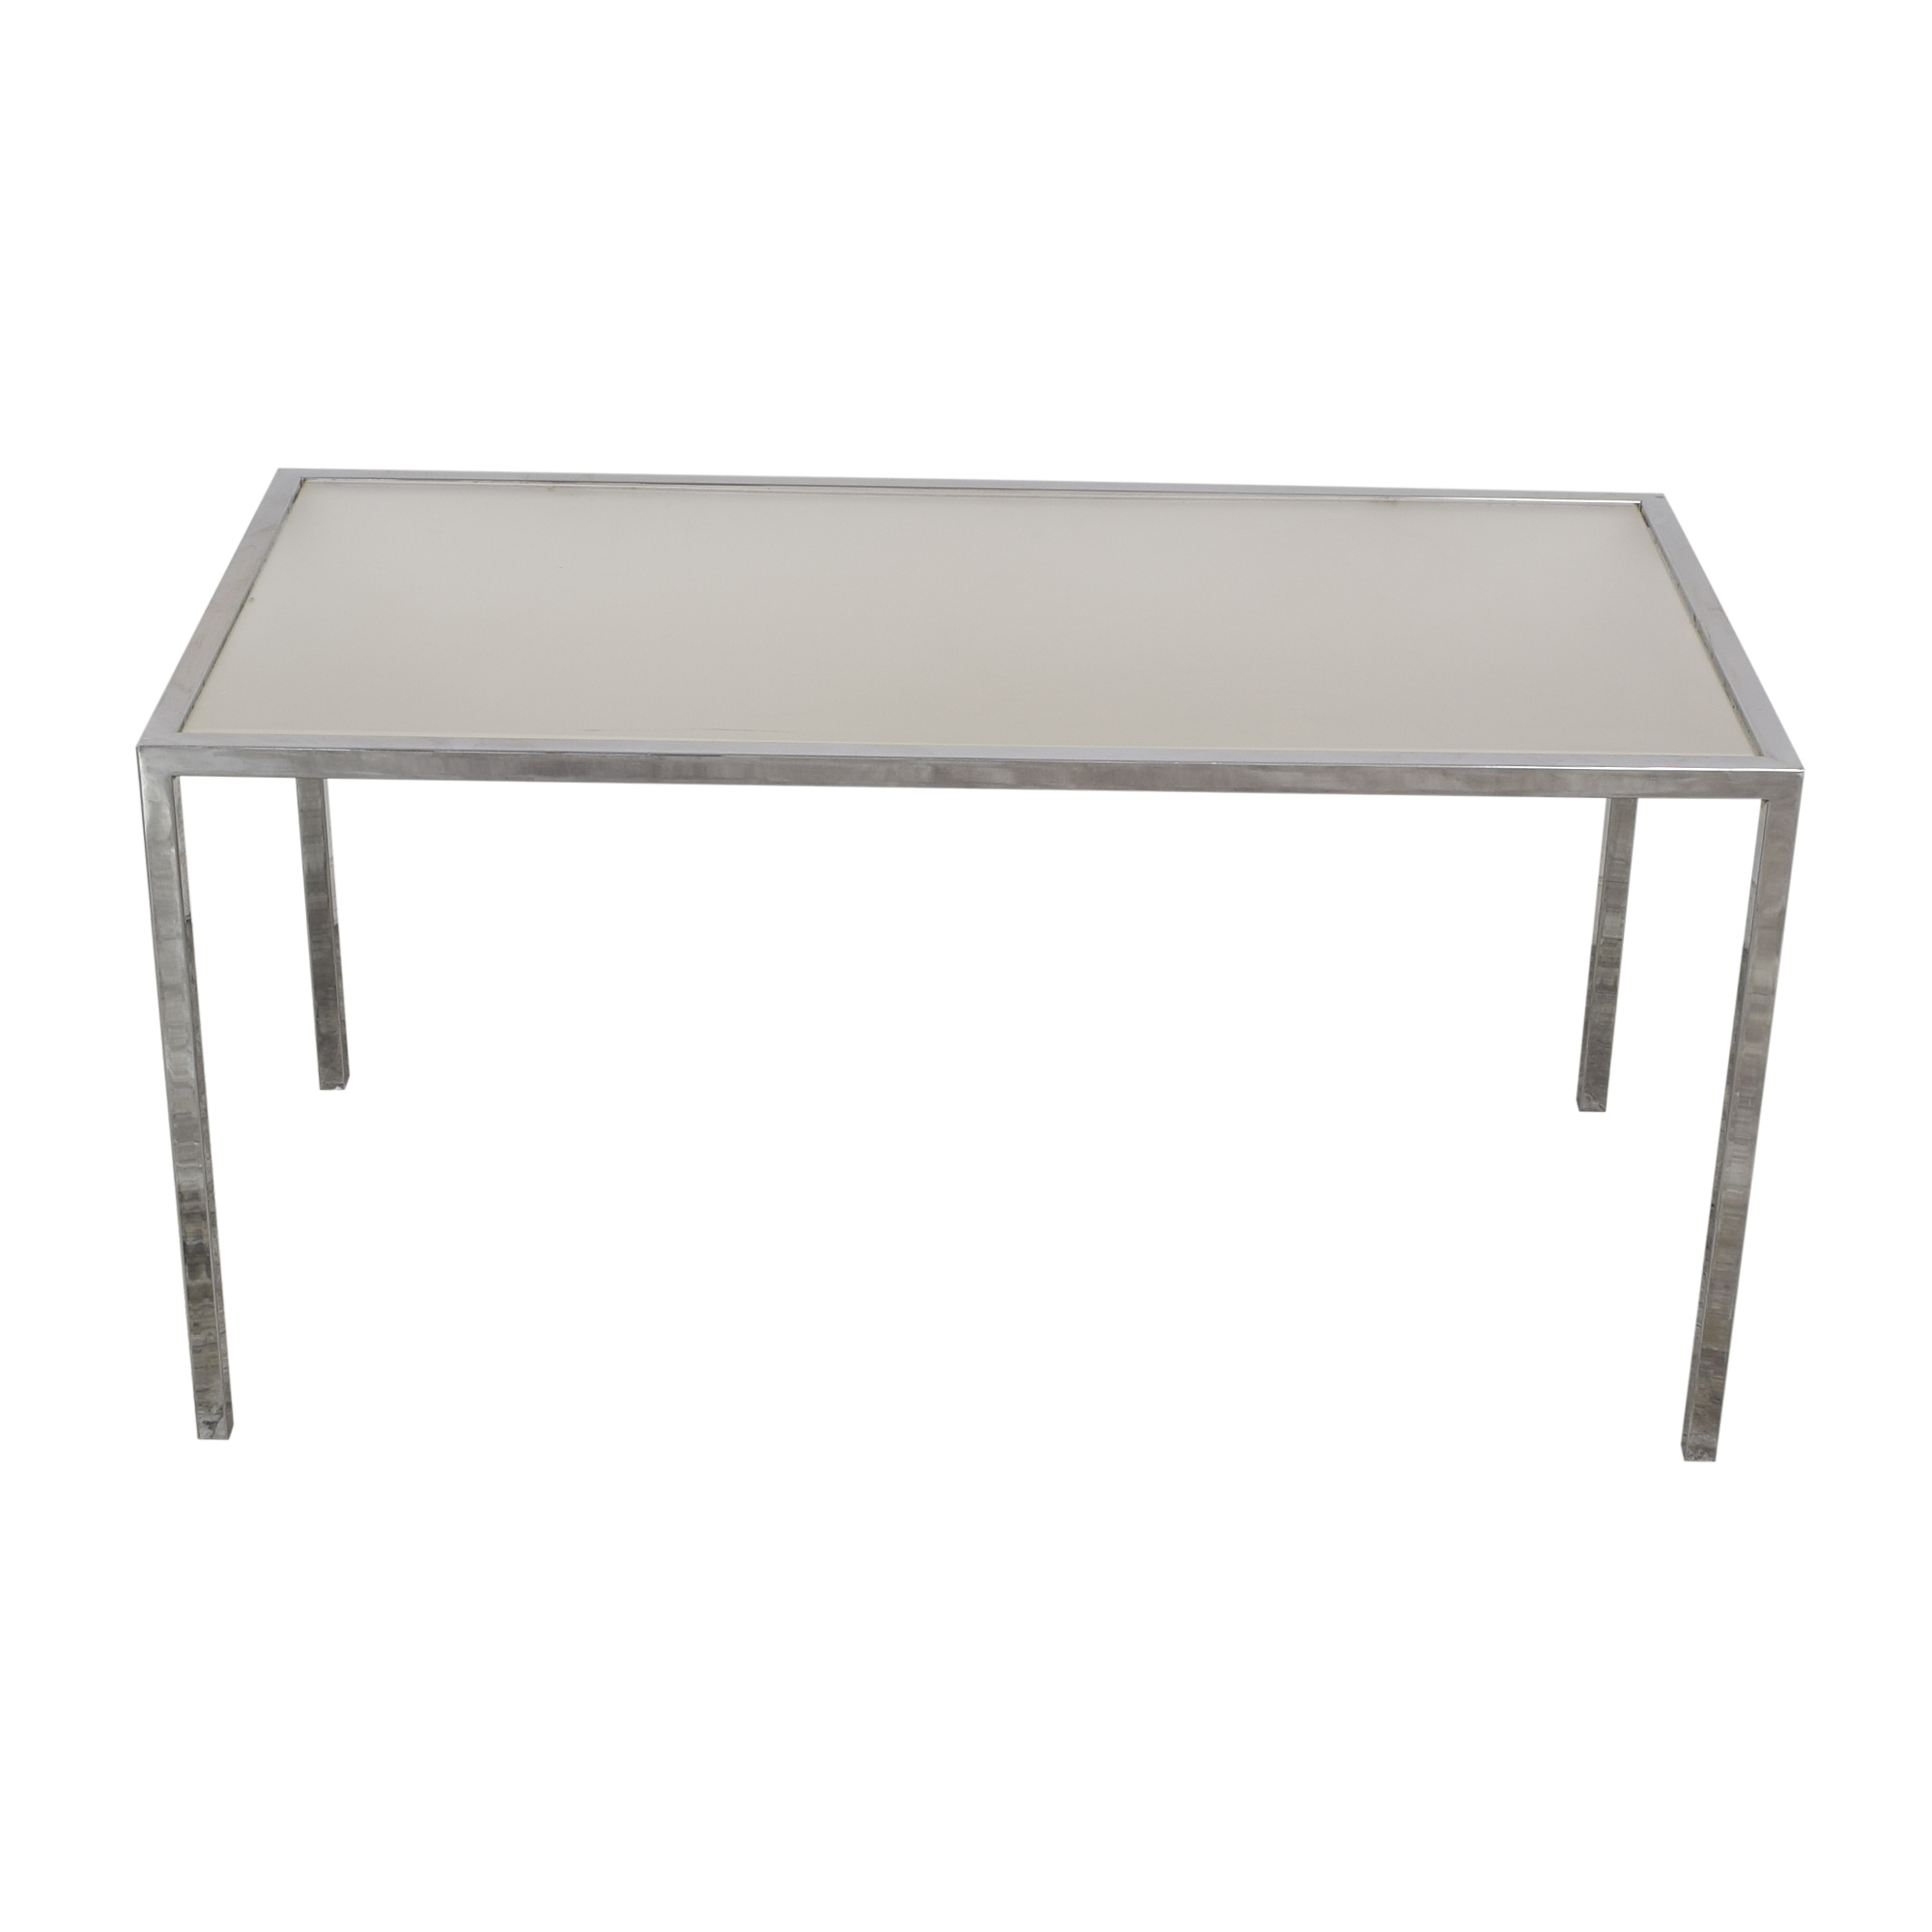 buy Chrome Base Dining Table with Sunken Glass Top